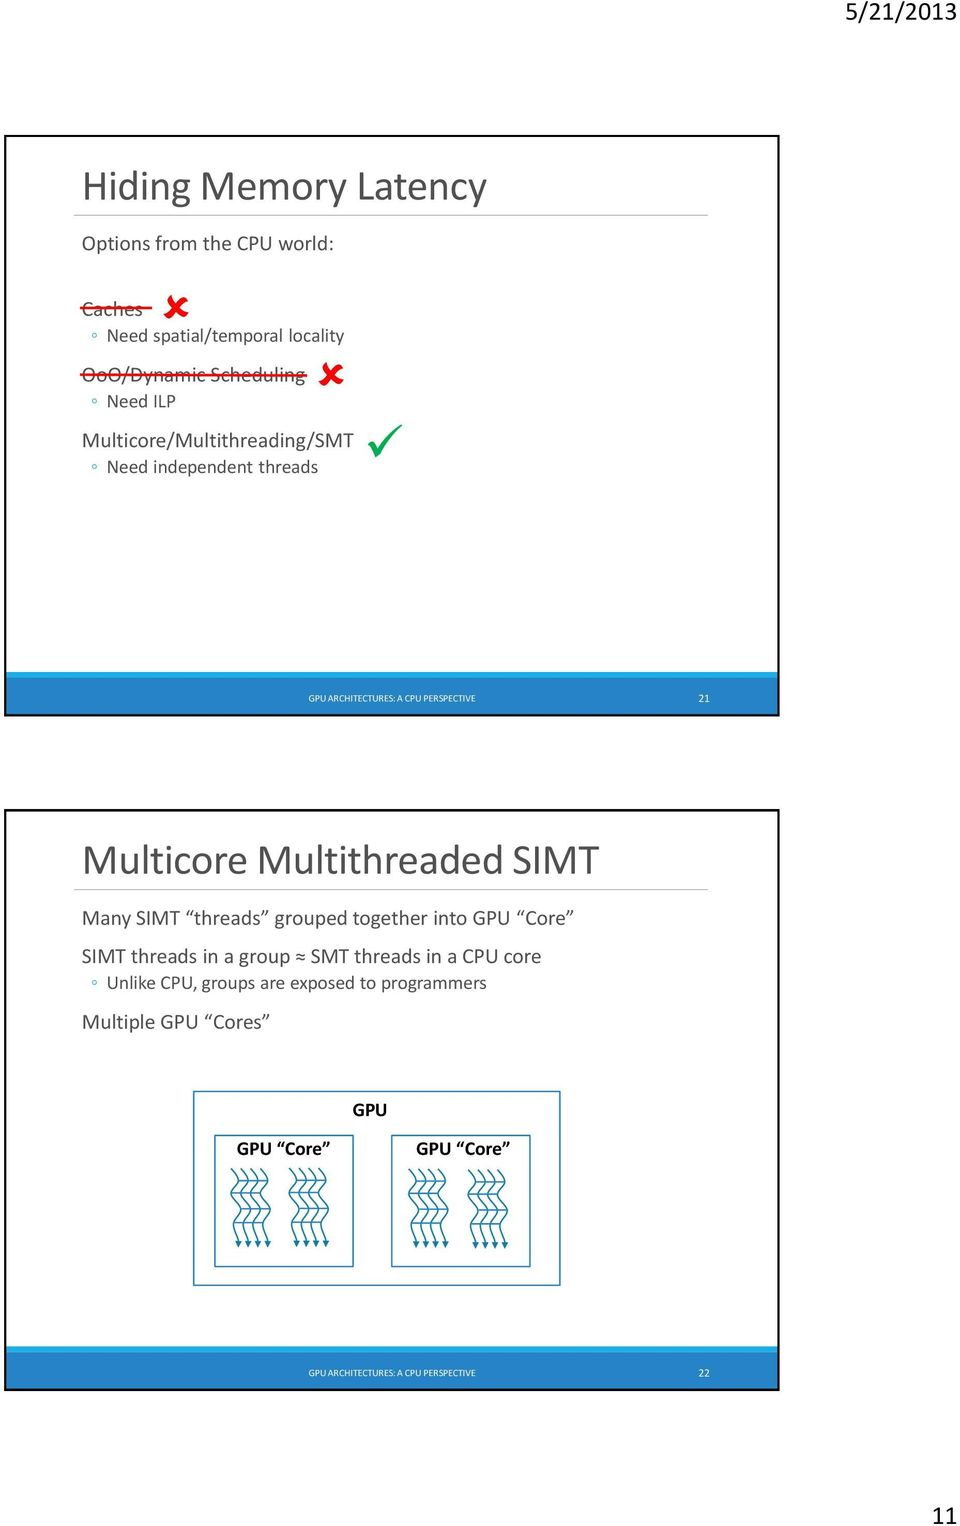 Multithreaded Many threads grouped together into GPU Core threads in a group SMT threads in a CPU core Unlike